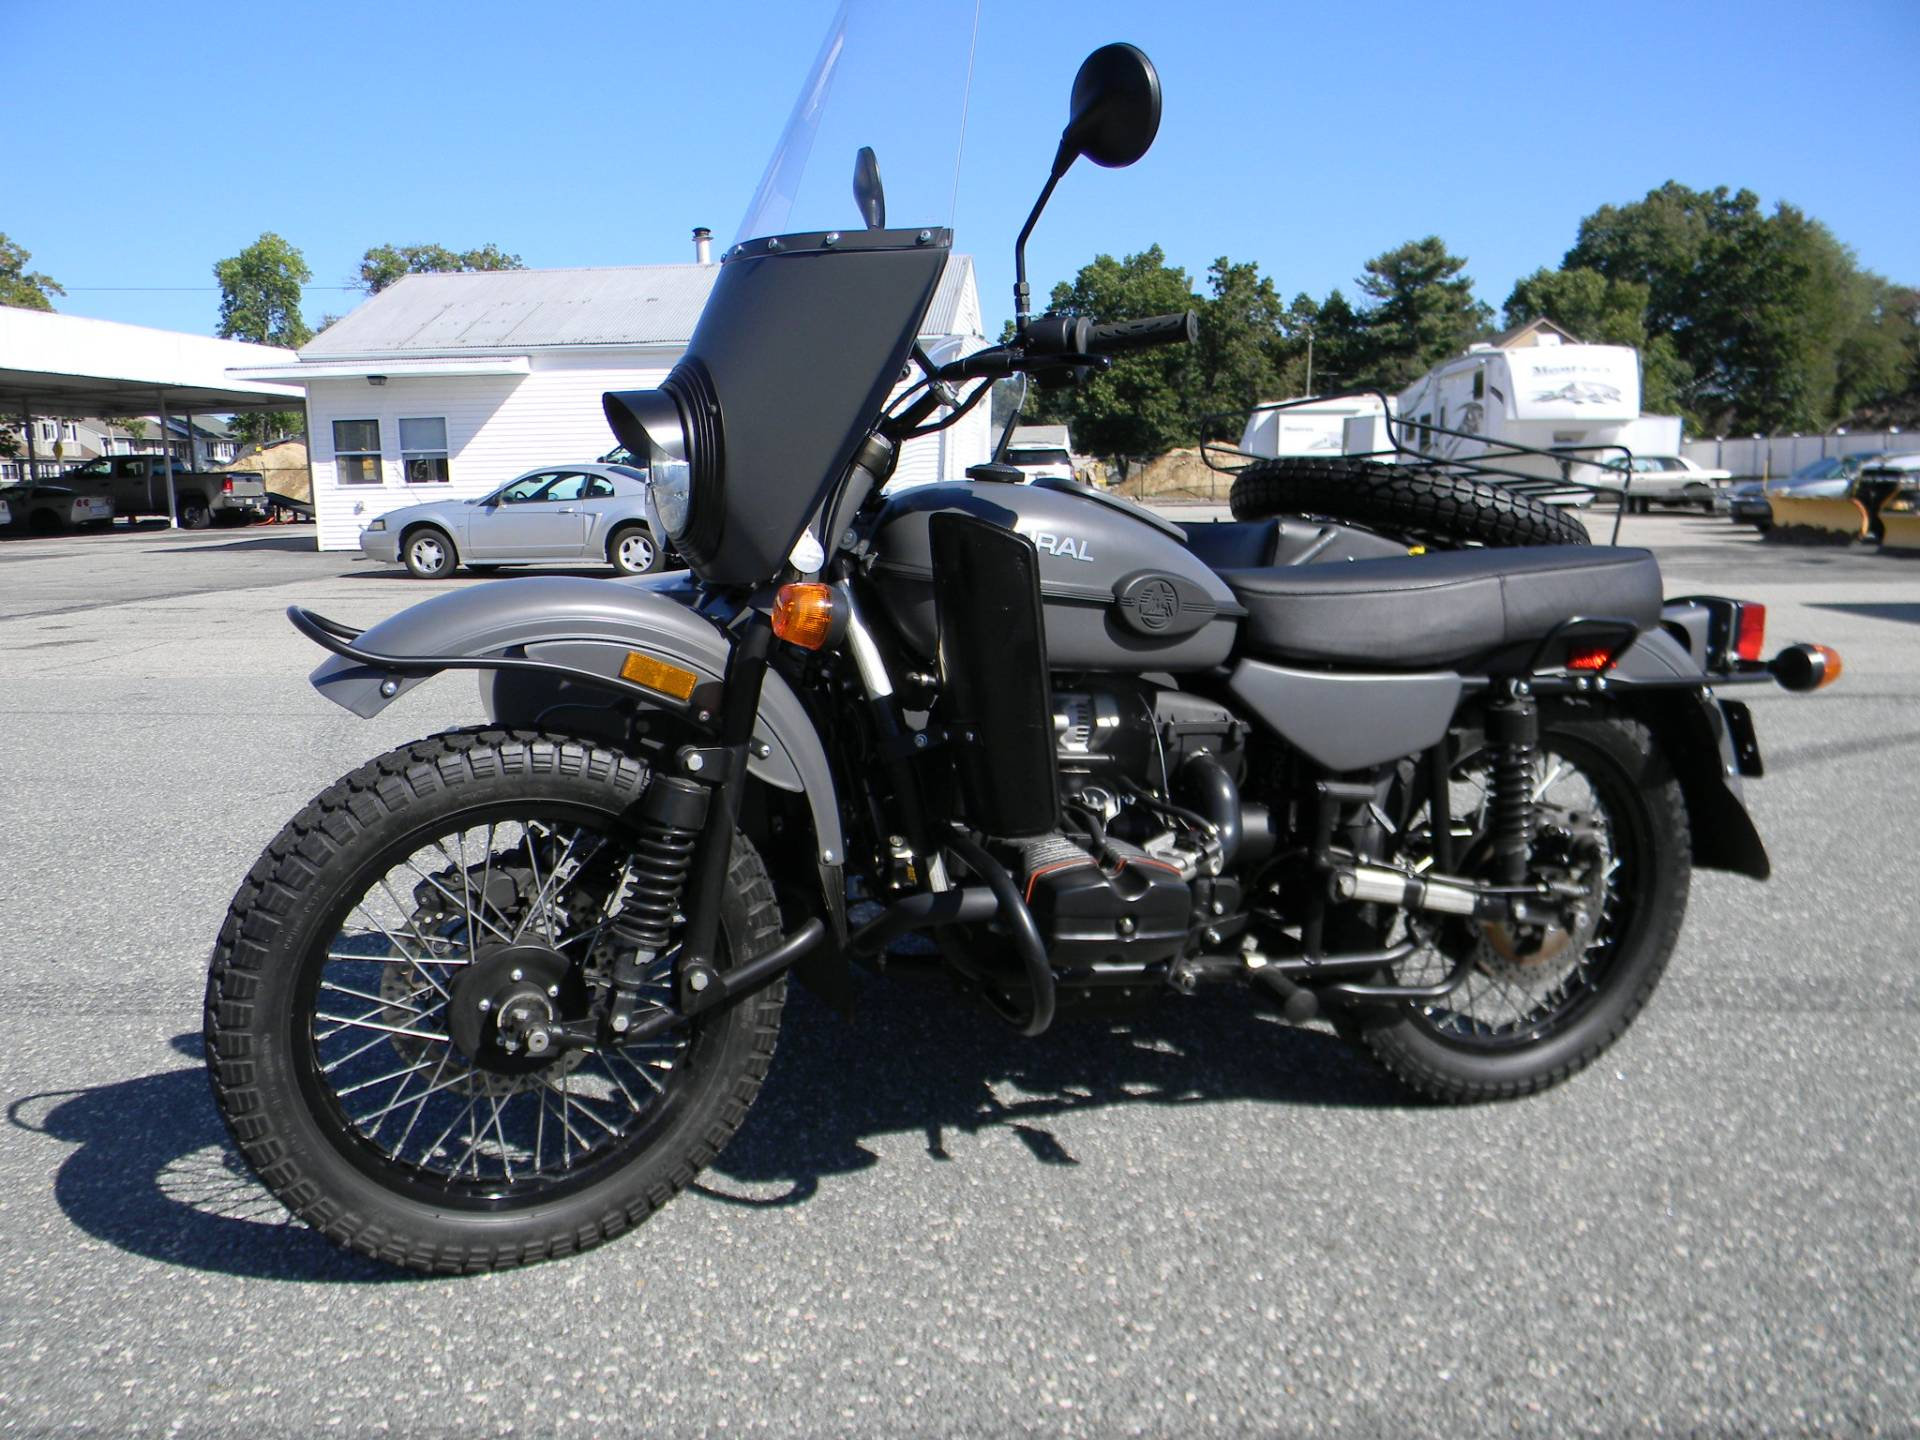 2014 Ural Motorcycles Gear-Up in Springfield, Massachusetts - Photo 6